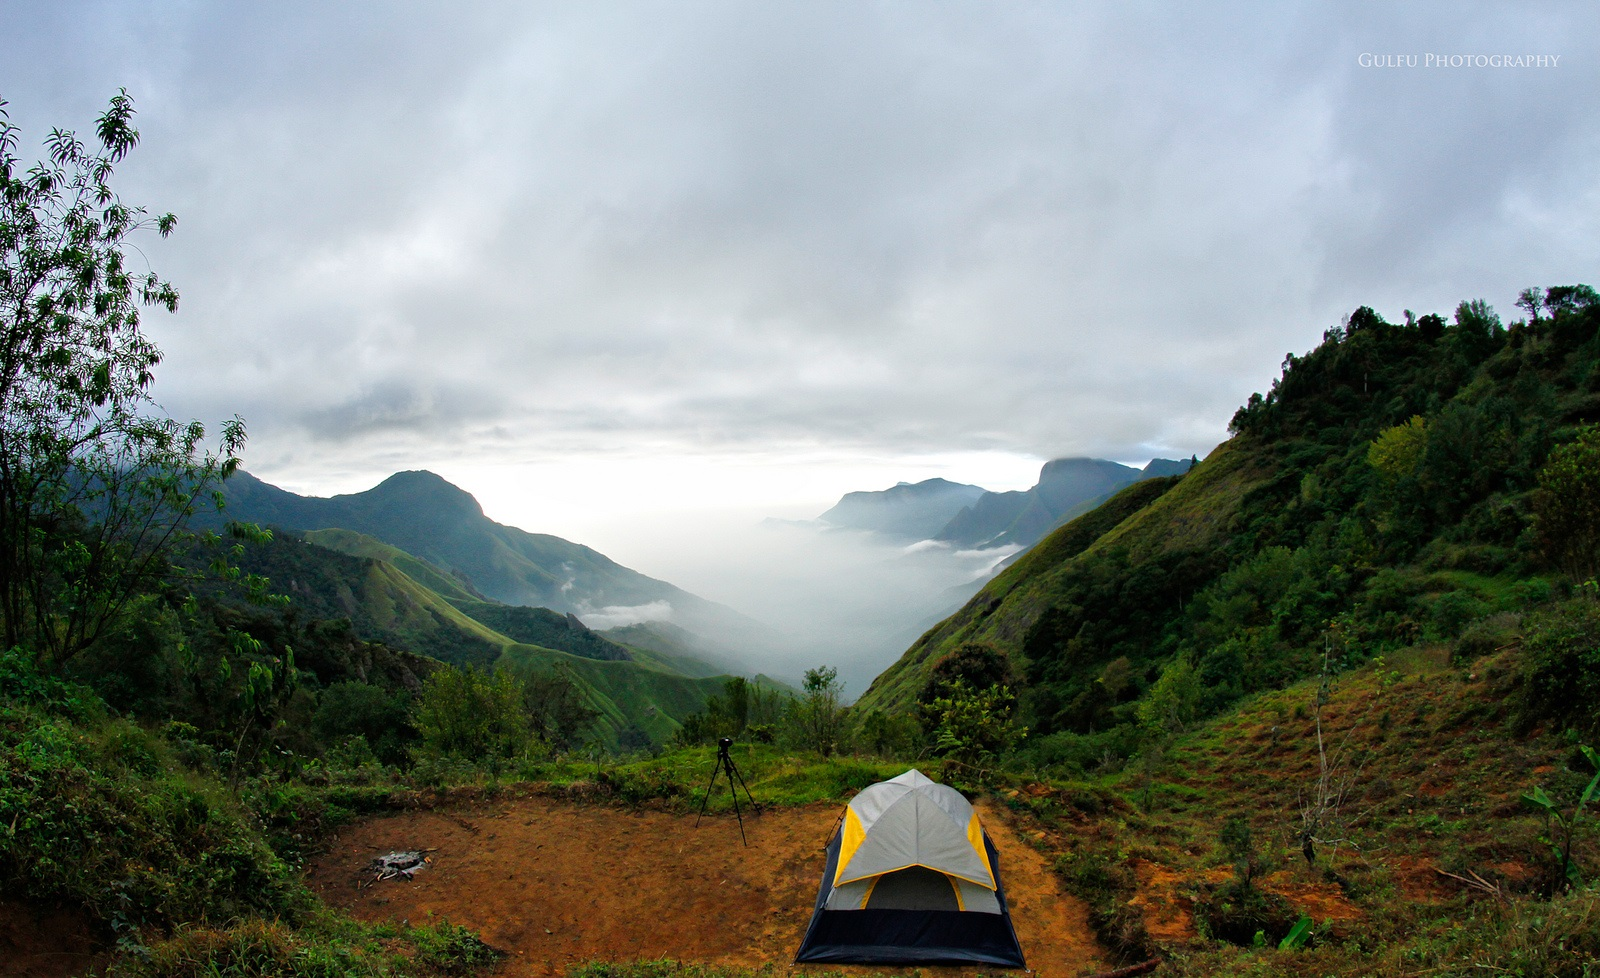 Camping In Wonderland – 7 Amazing Sites For Camping In India